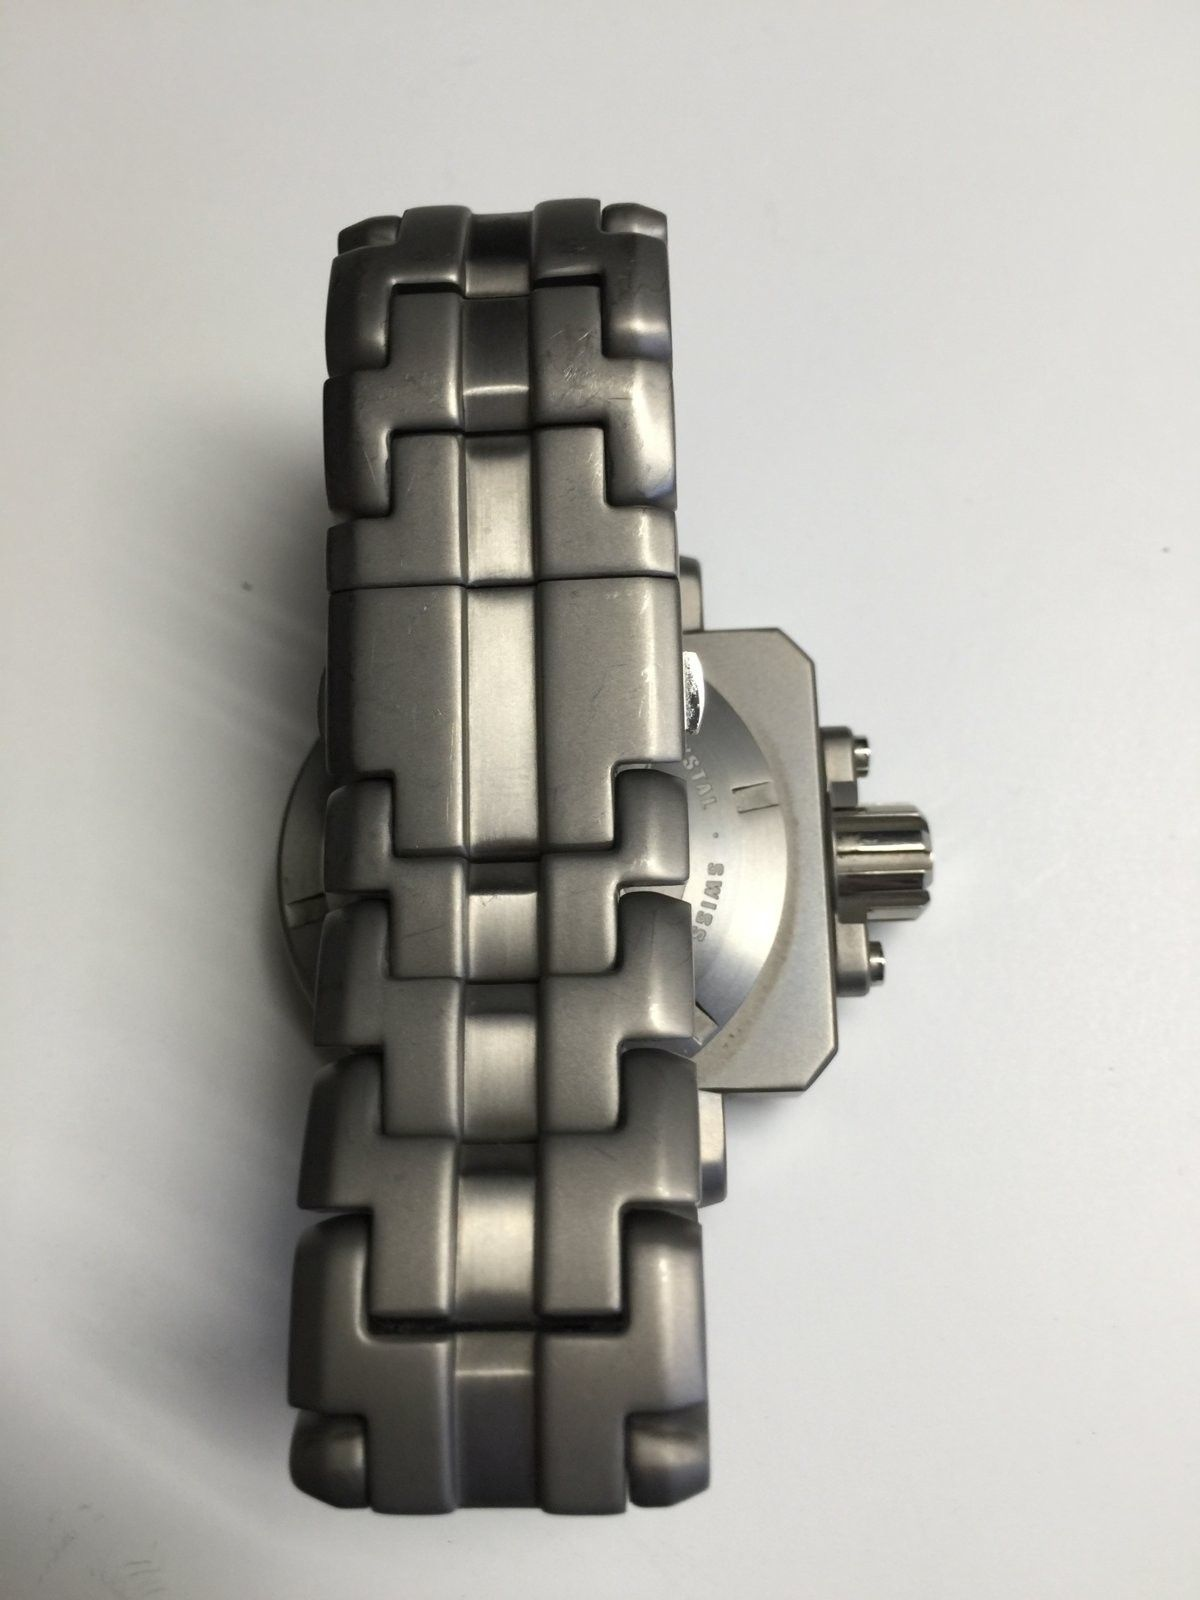 Titanium Gearbox with Titanium band -- price dropped to $750 on 7/6/16 - IMG_4013.JPG